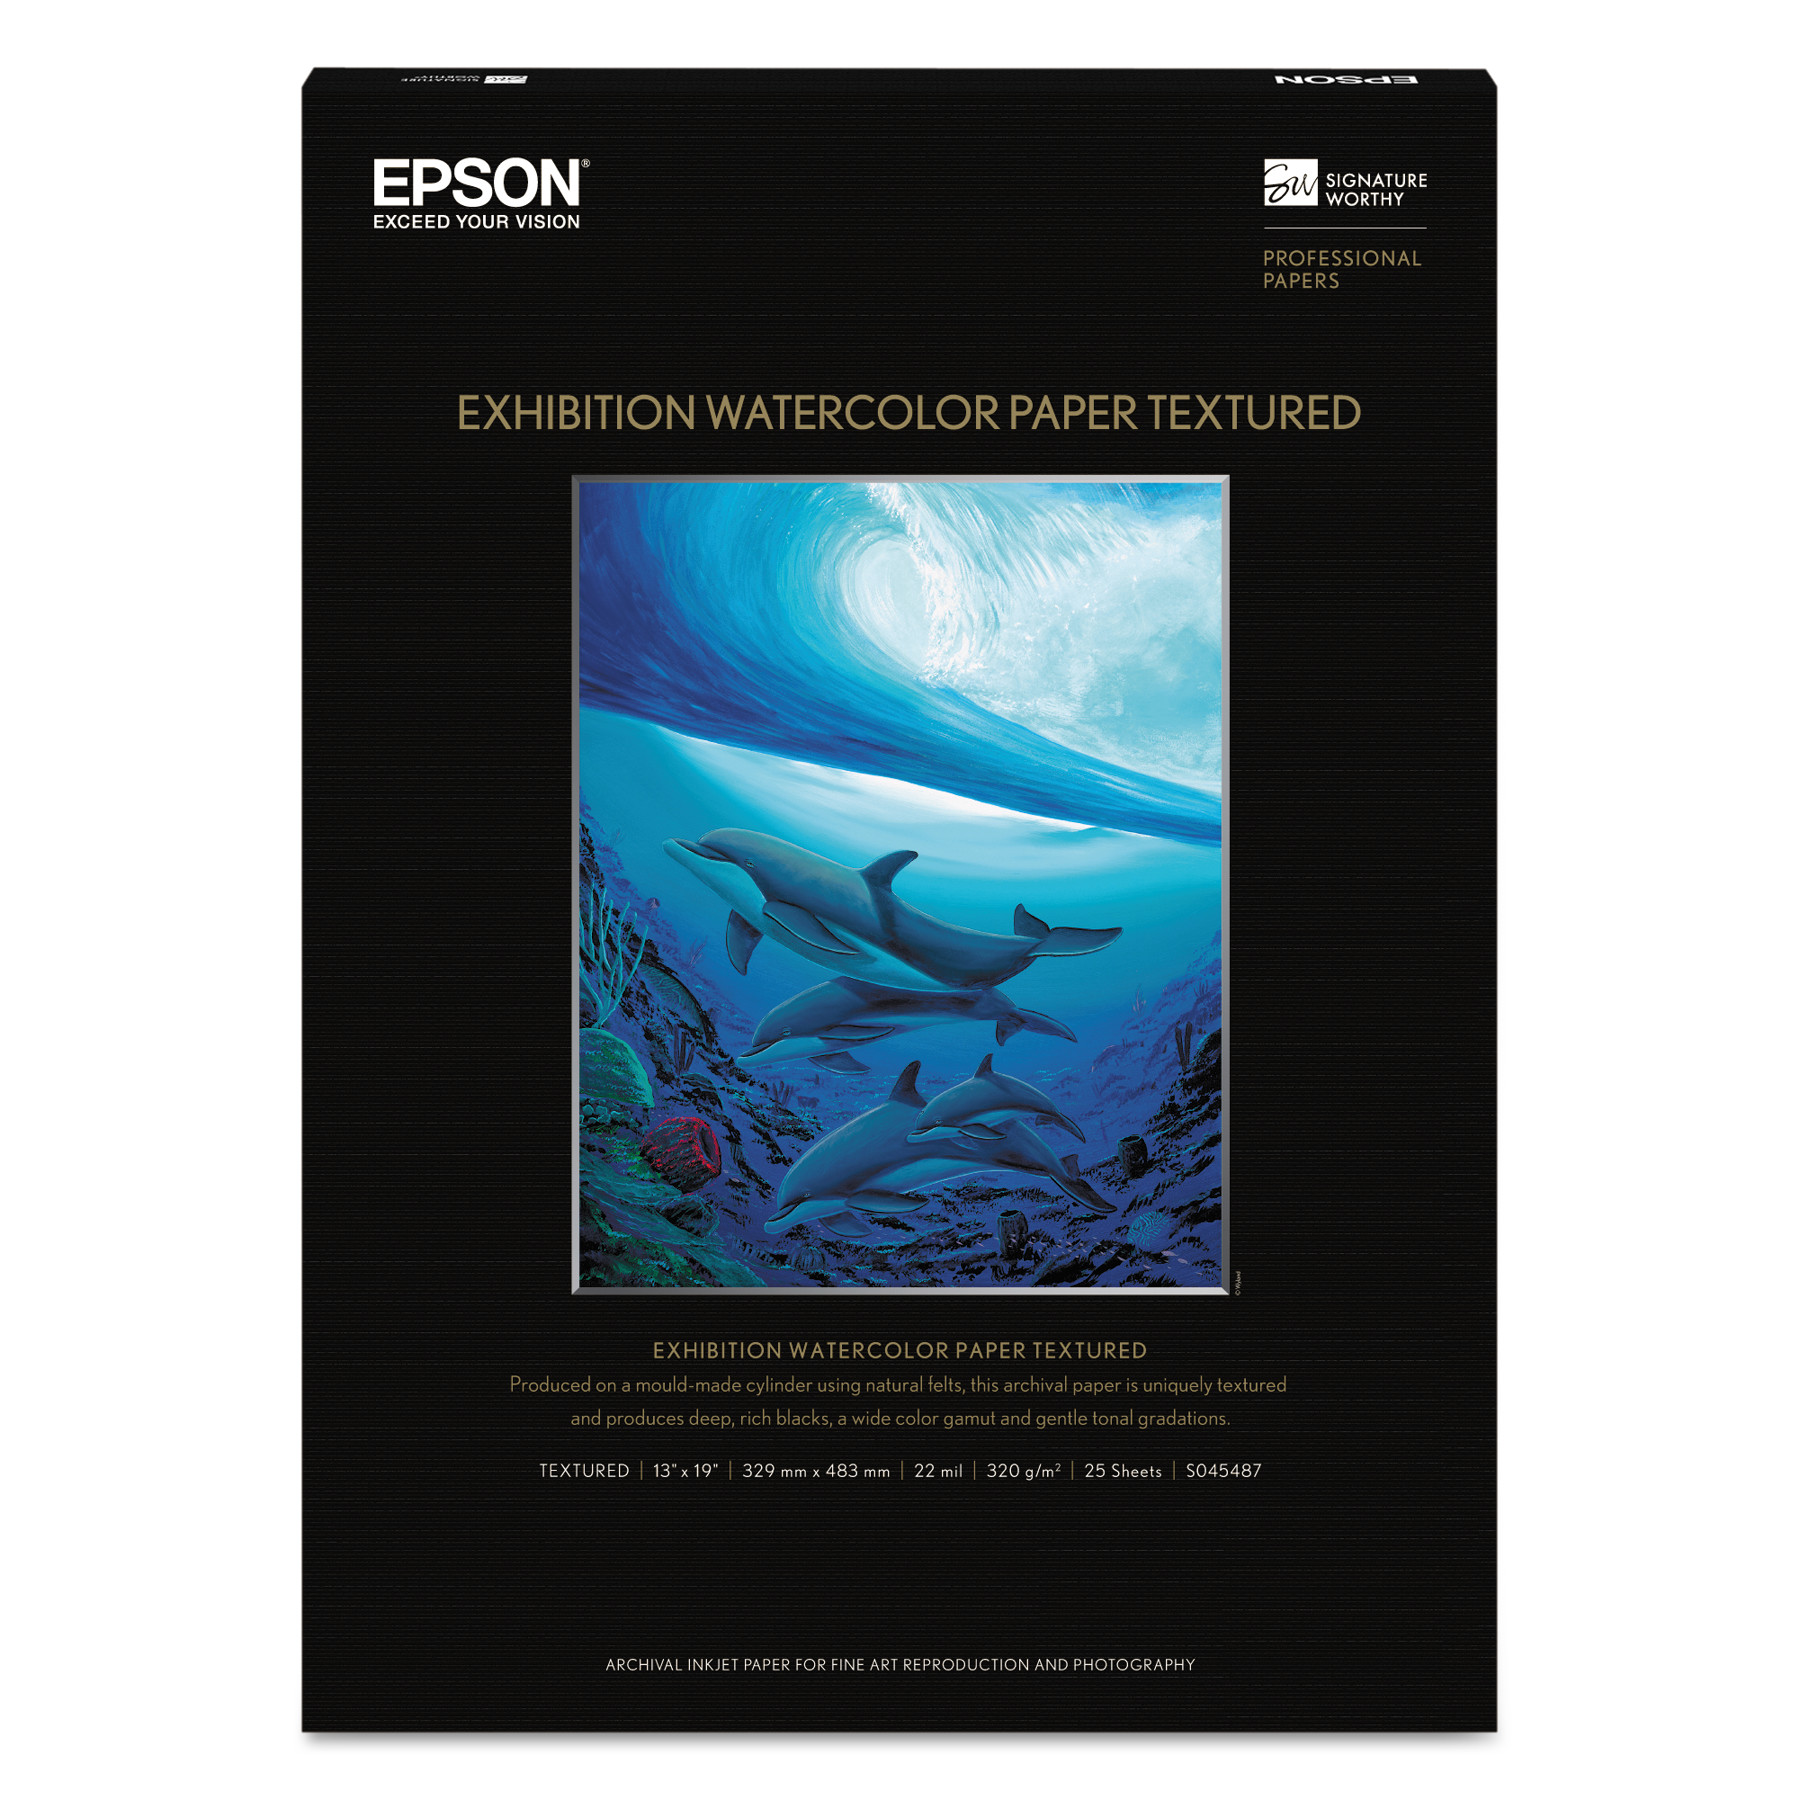 Epson Exhibition Textured Watercolor Paper, 13 x 19, White